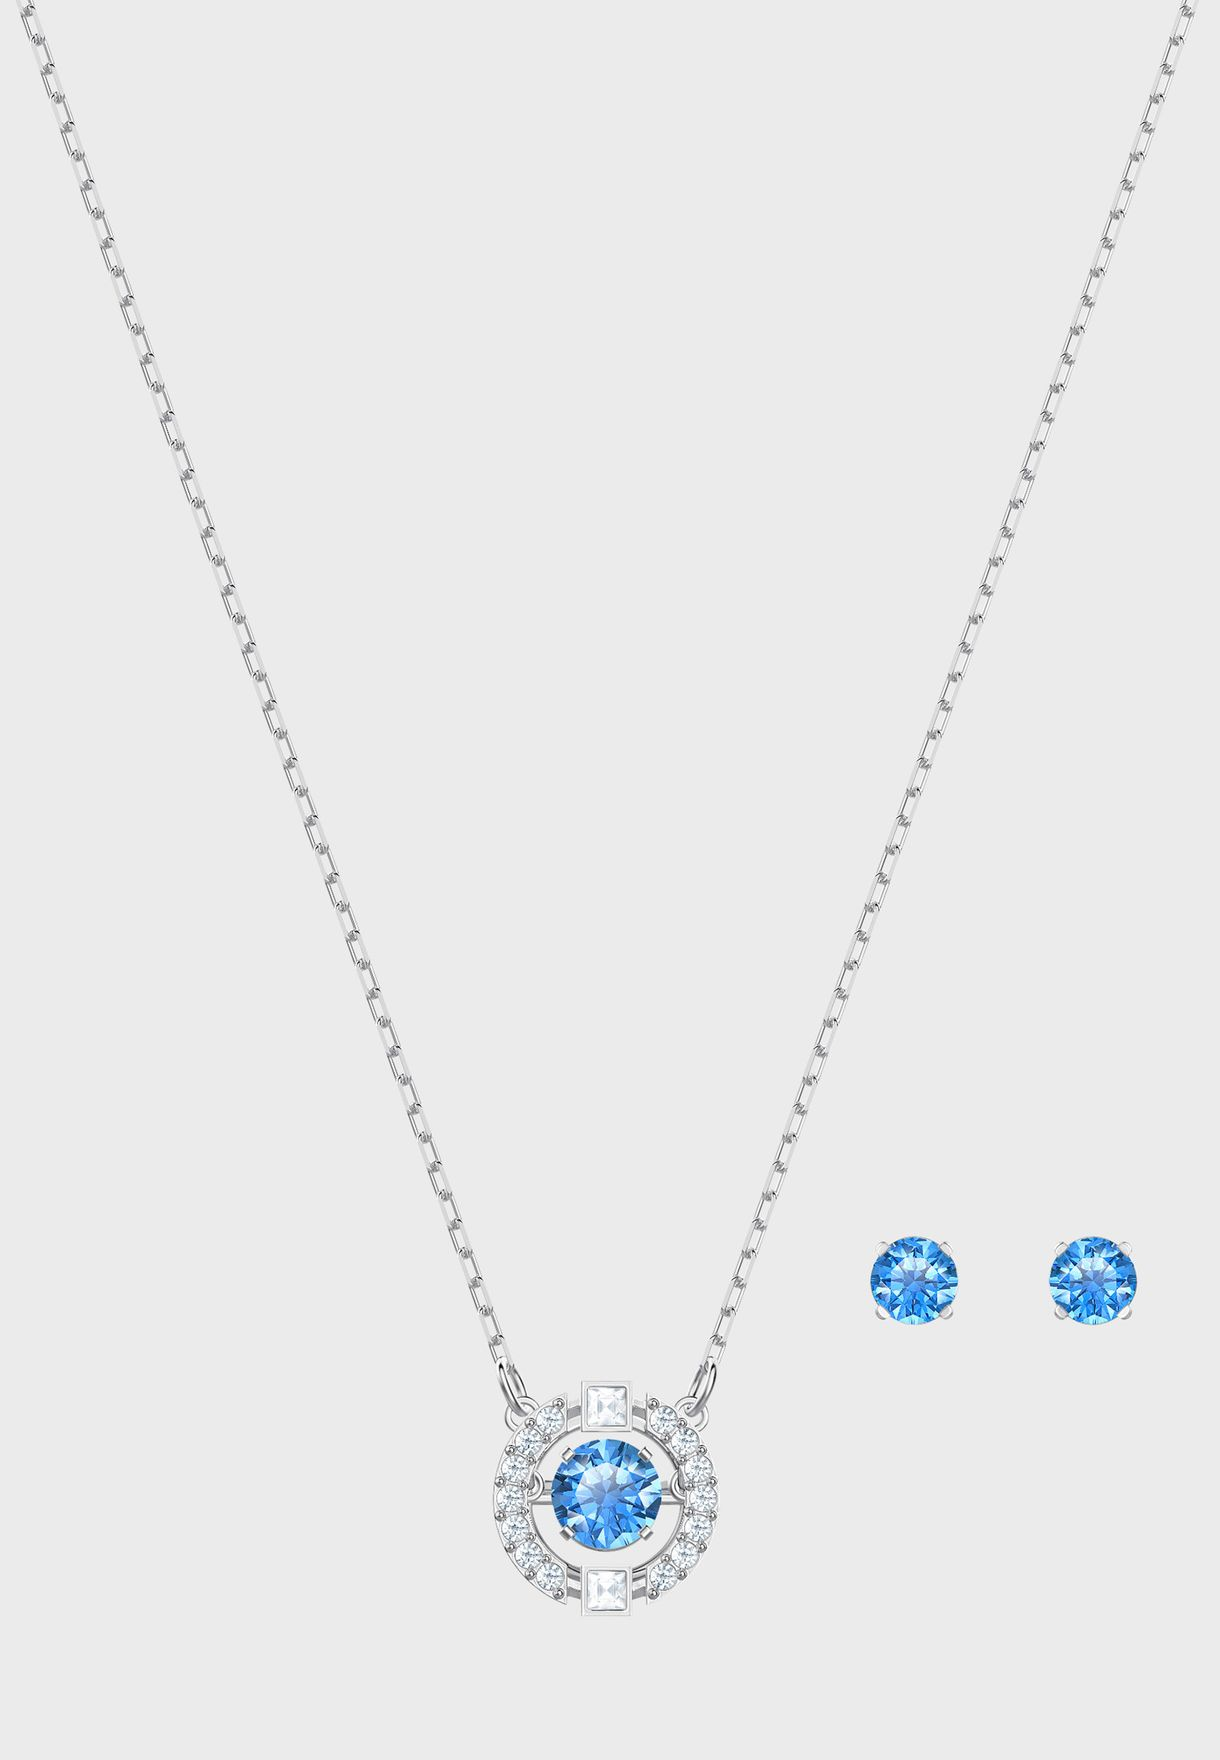 Sparkling Round Pendent Necklace+Earrings Set